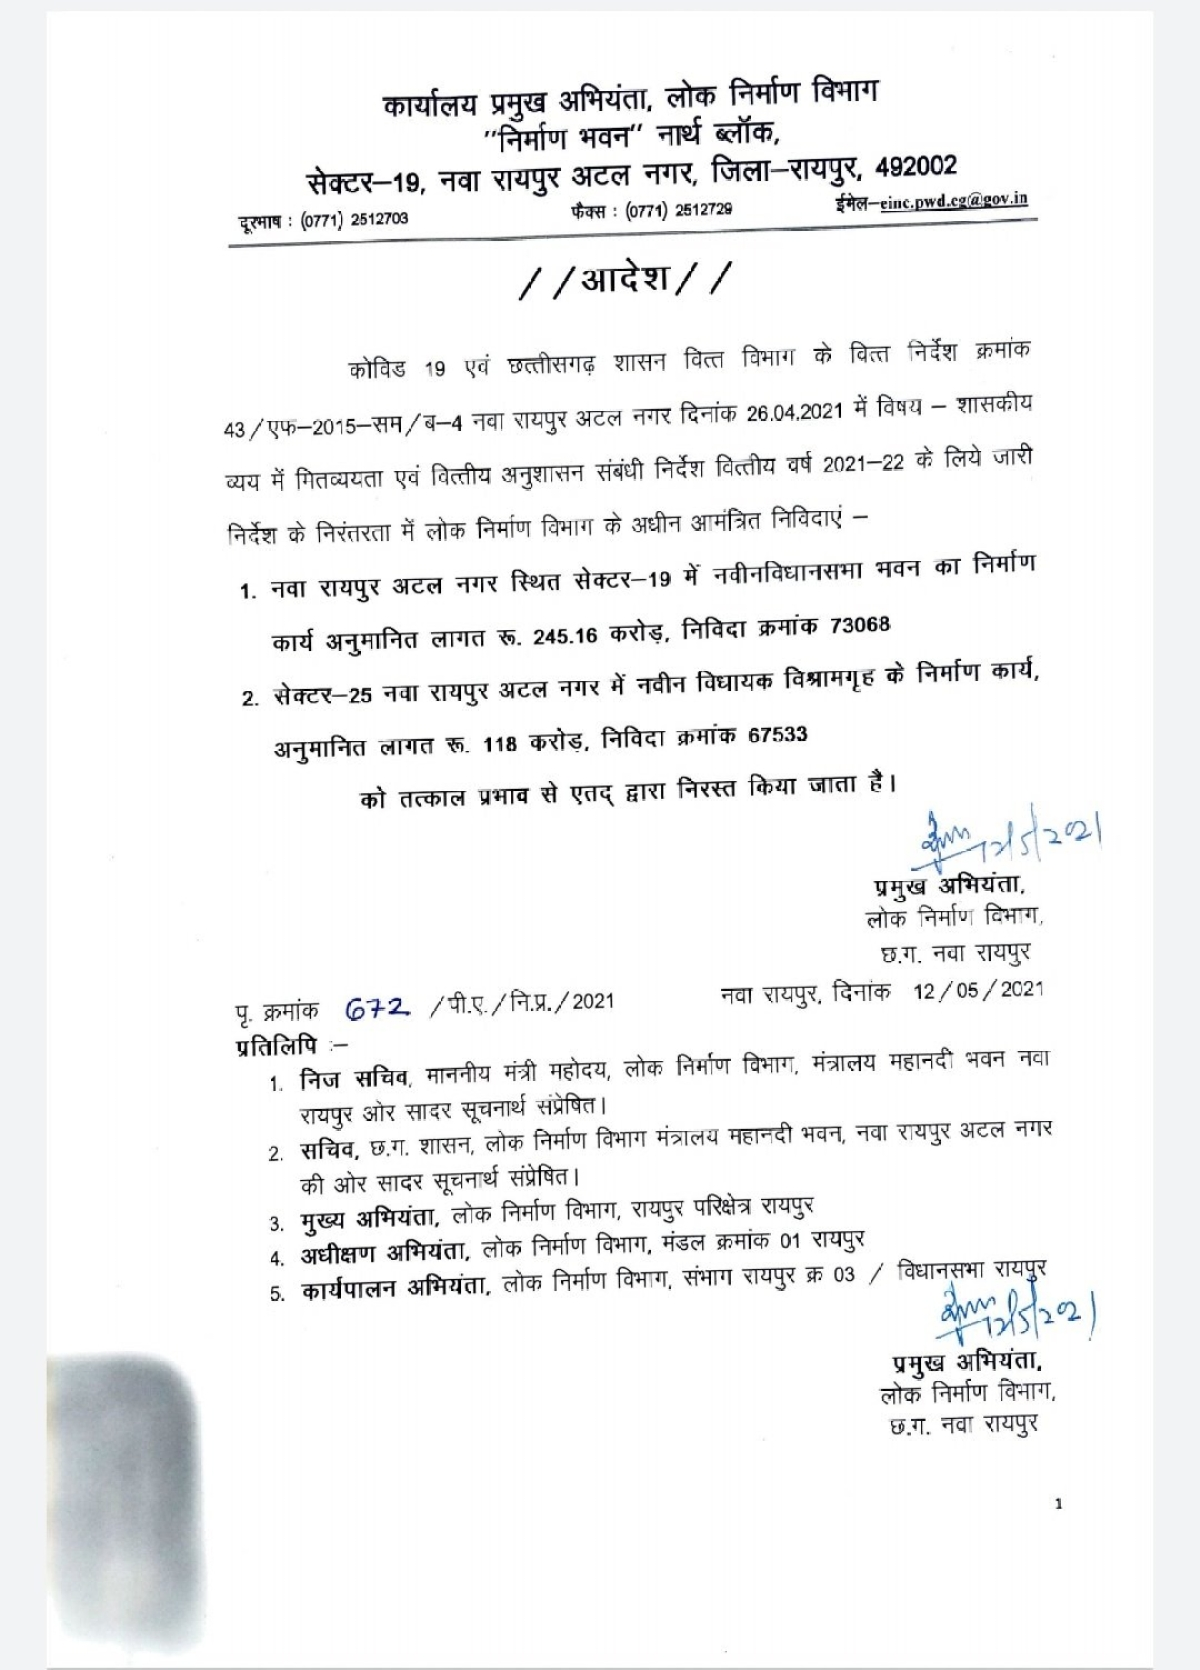 Chhattisgarh: Bhupesh Baghel govt stops all construction projects in Nava Raipur to fight COVID-19, Congress asks BJP president JP Nadda to stop Central Vista project